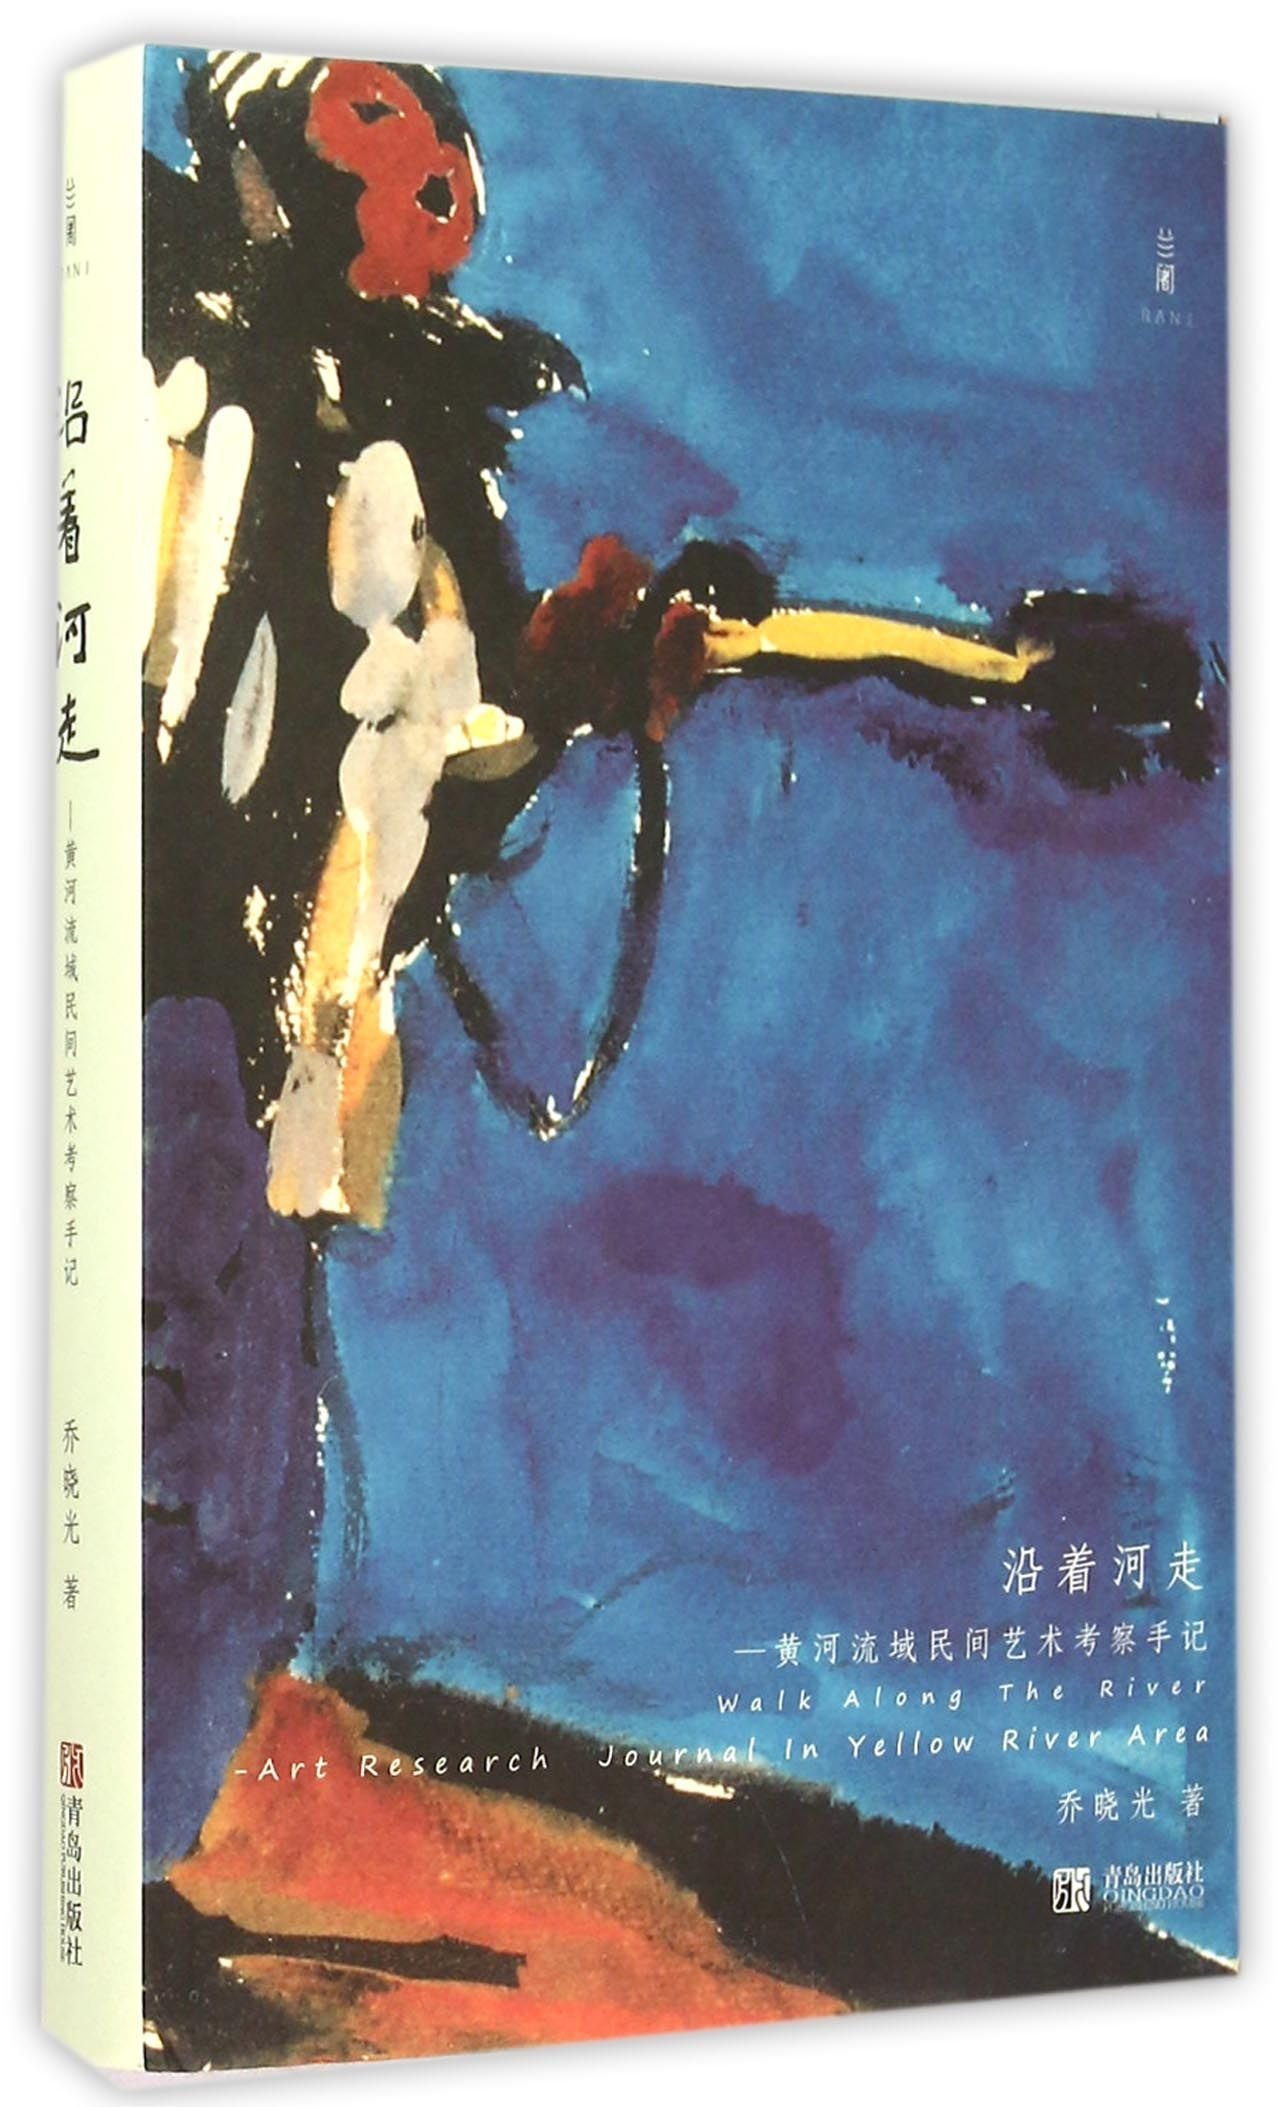 Download Walk Along The River - Art Reserch Journal In Yellow River Area (Chinese Edition) pdf